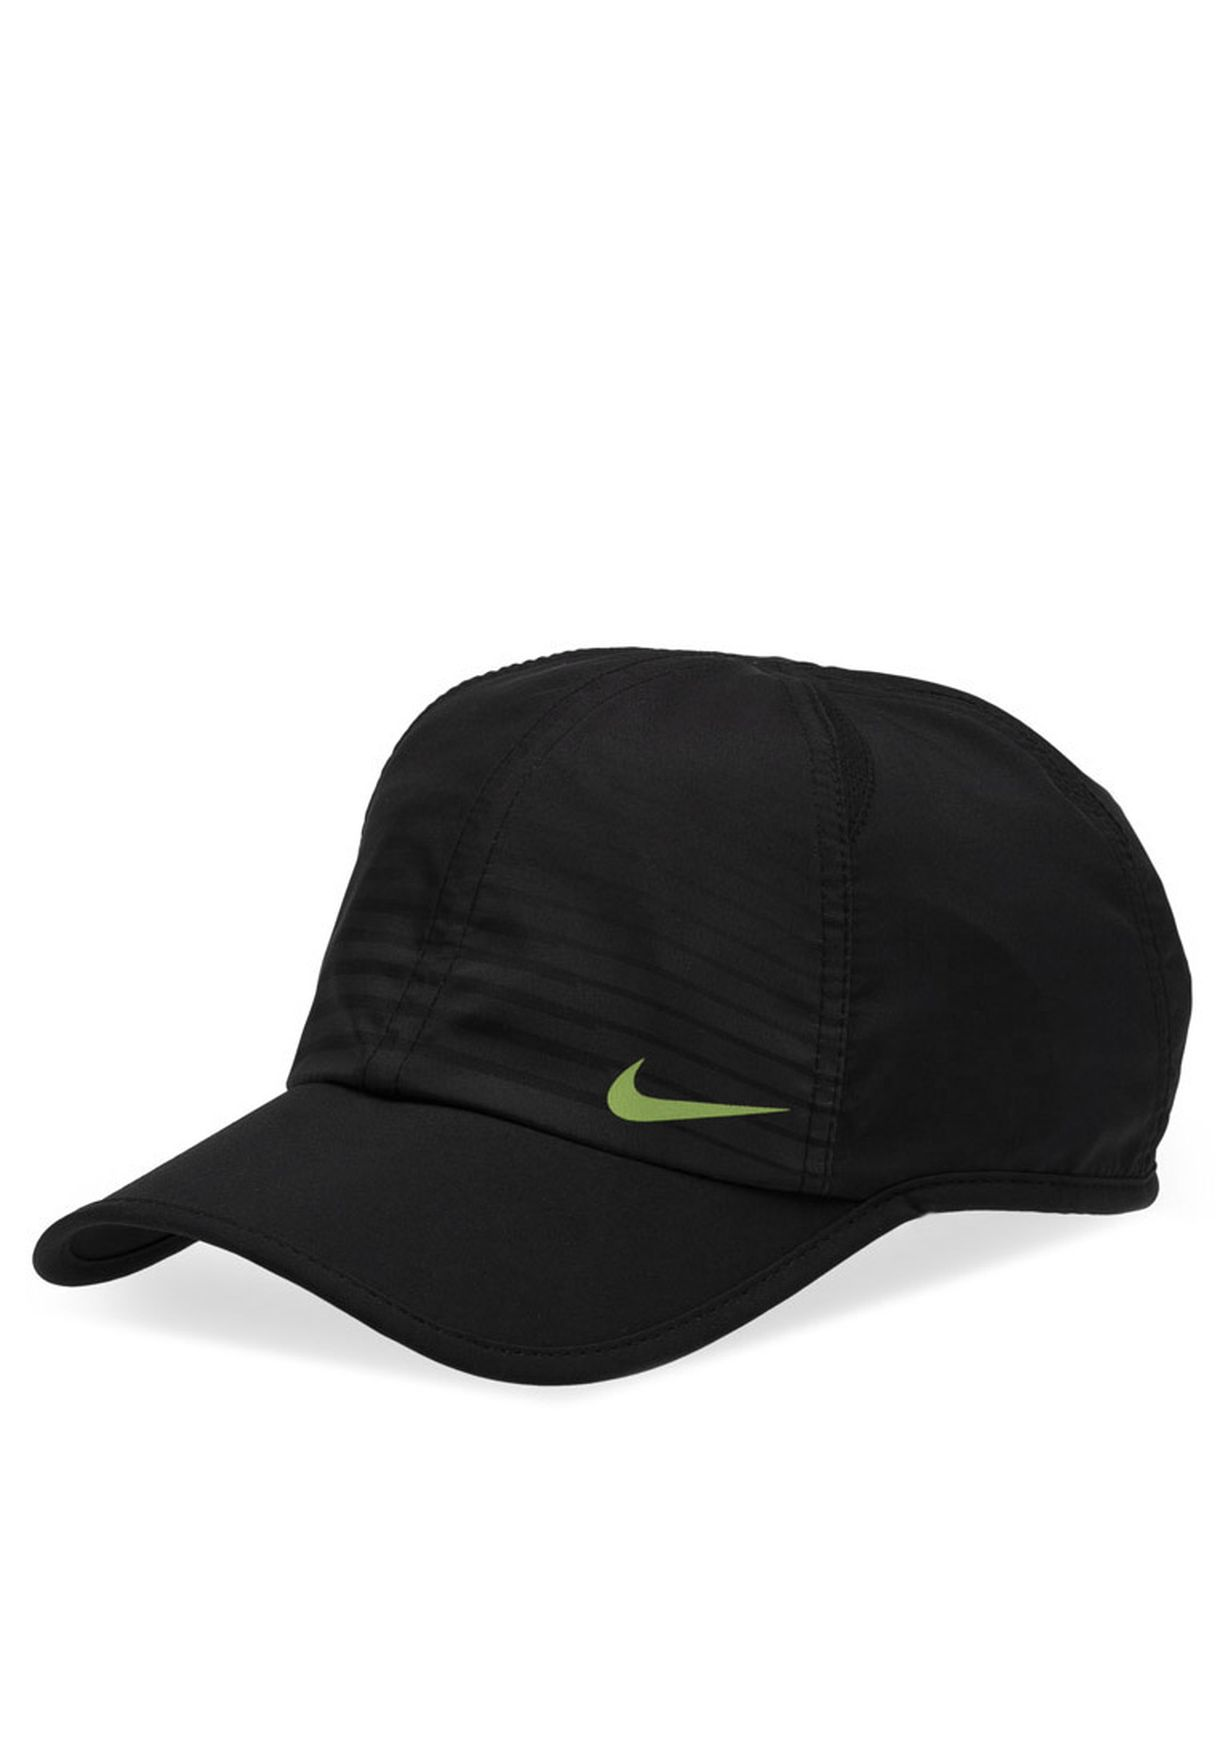 Shop Nike black Feather Light Graphic Cap NKAP524229-010 for Men in Qatar -  NI727AC55YVW e53c99d668a7